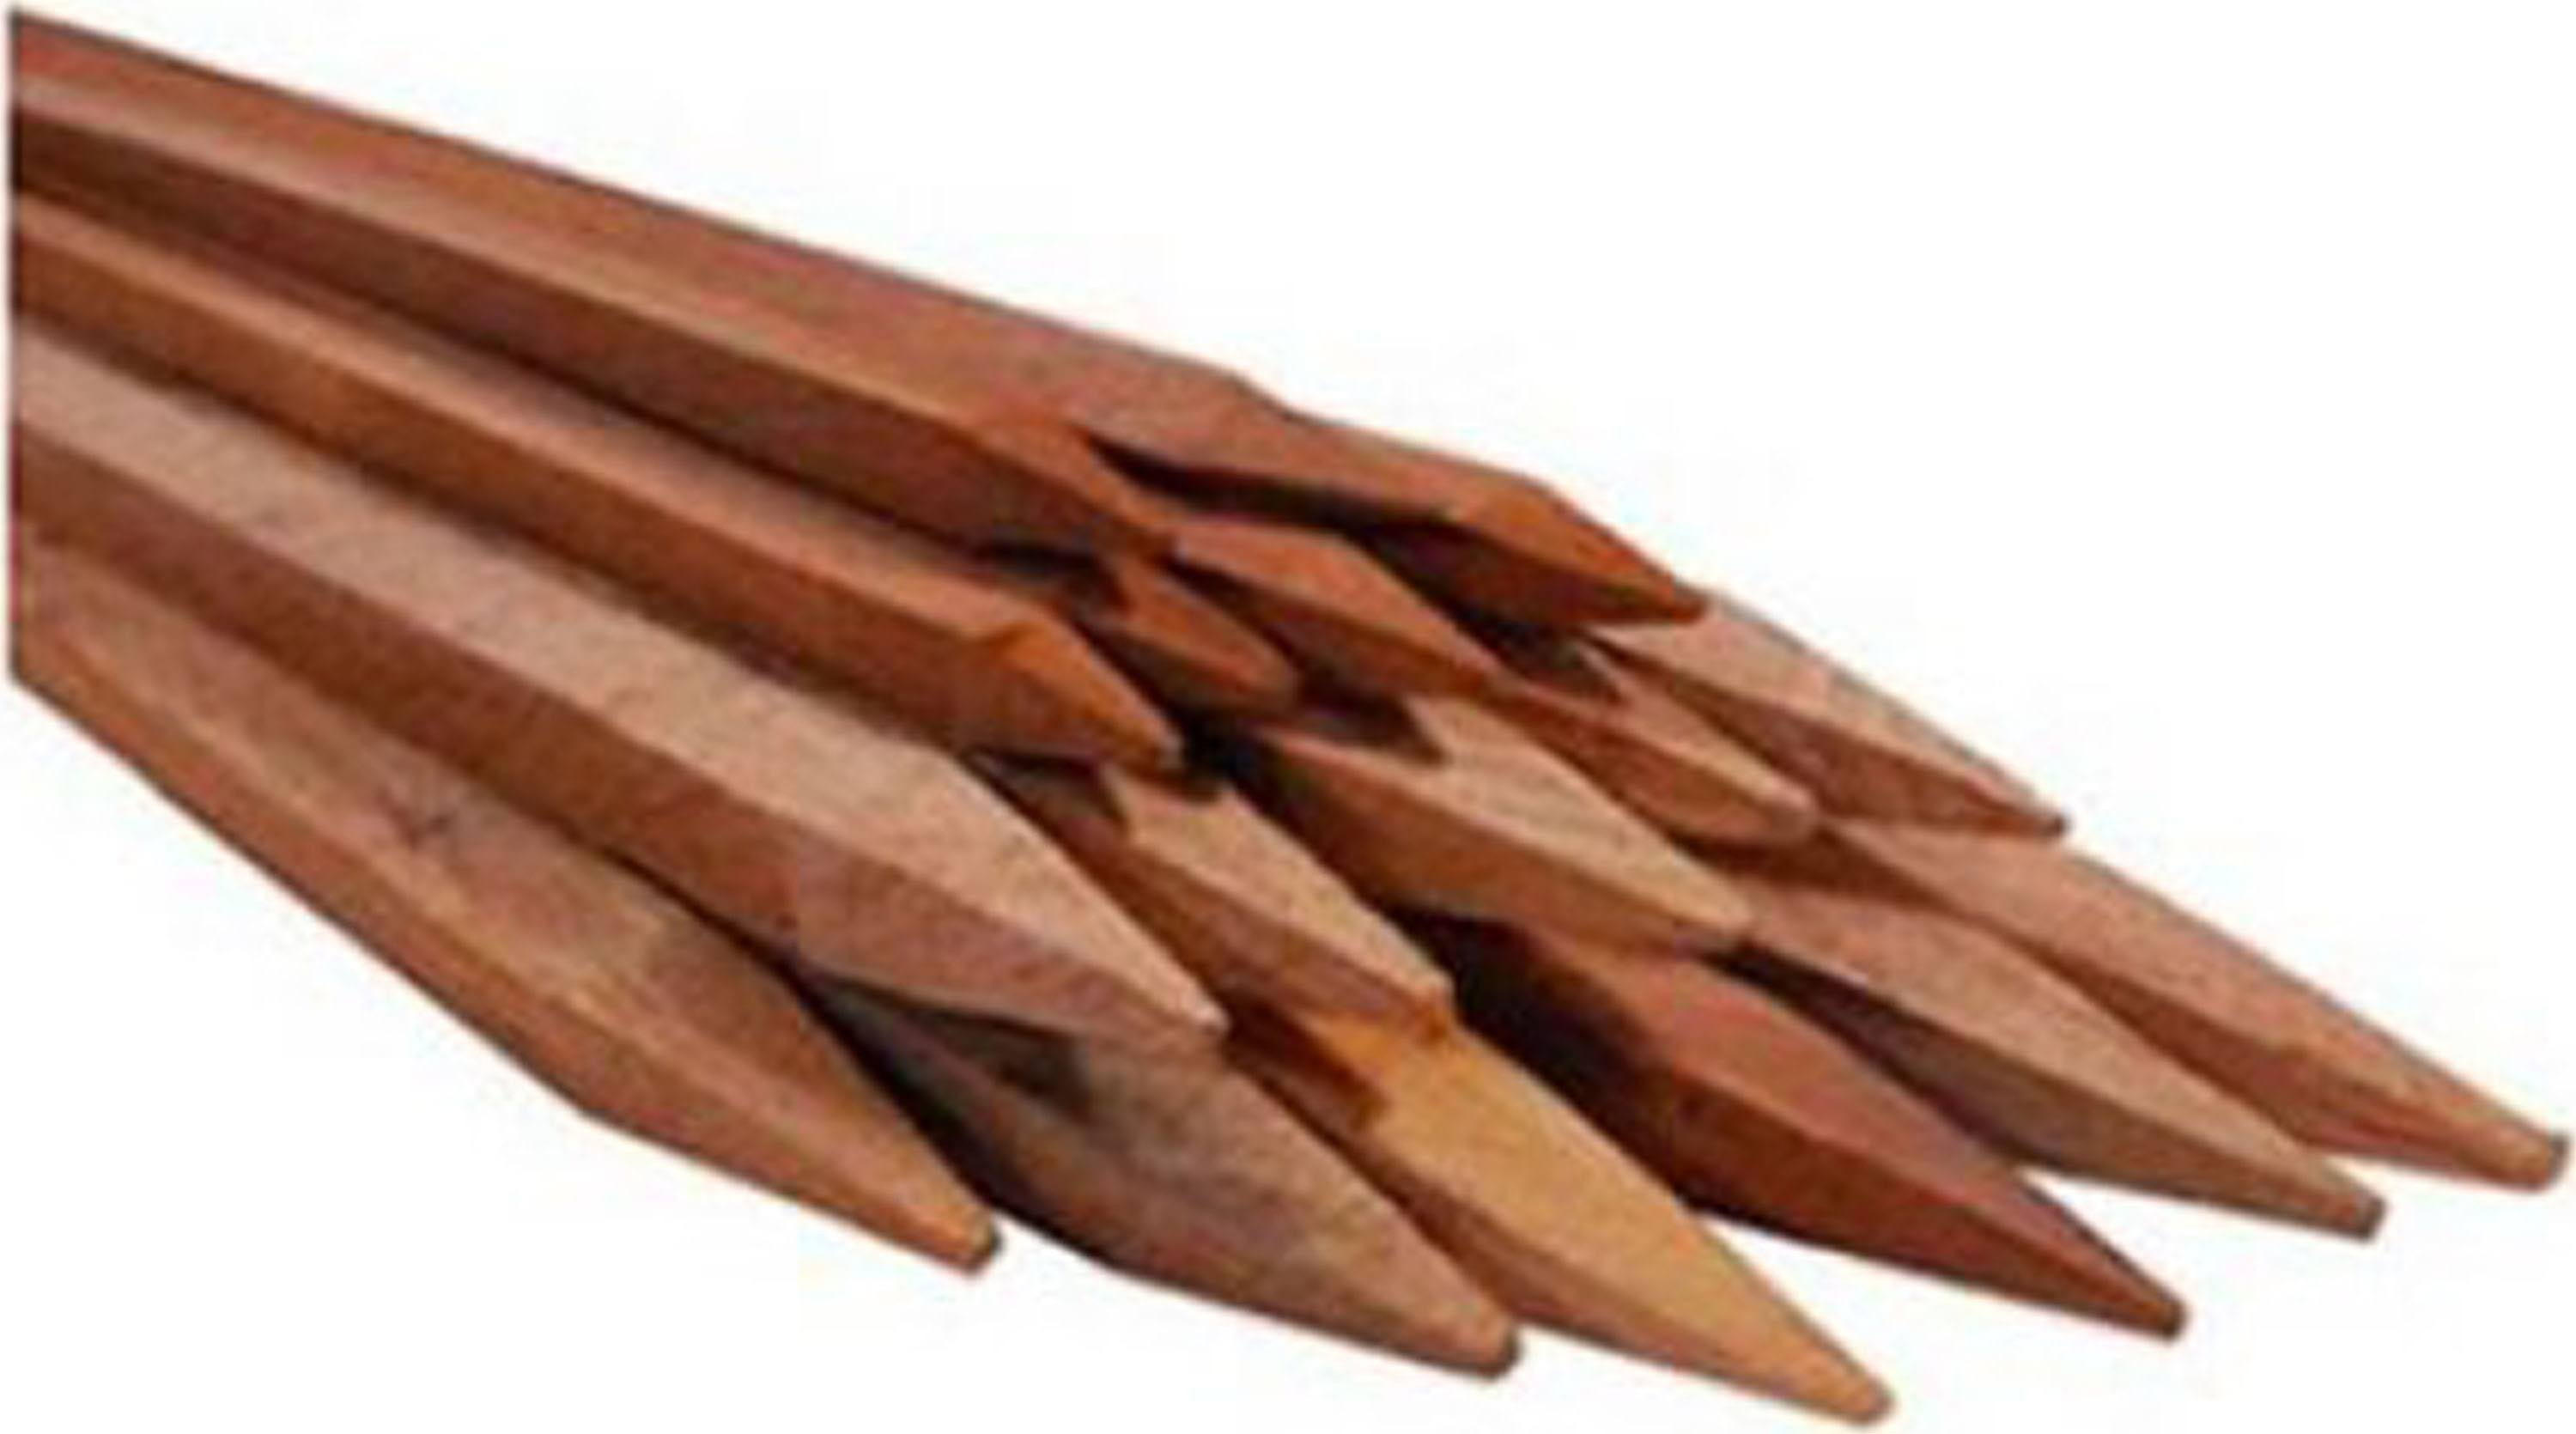 Bond Hardwood Stakes - 3ft, 6pcs